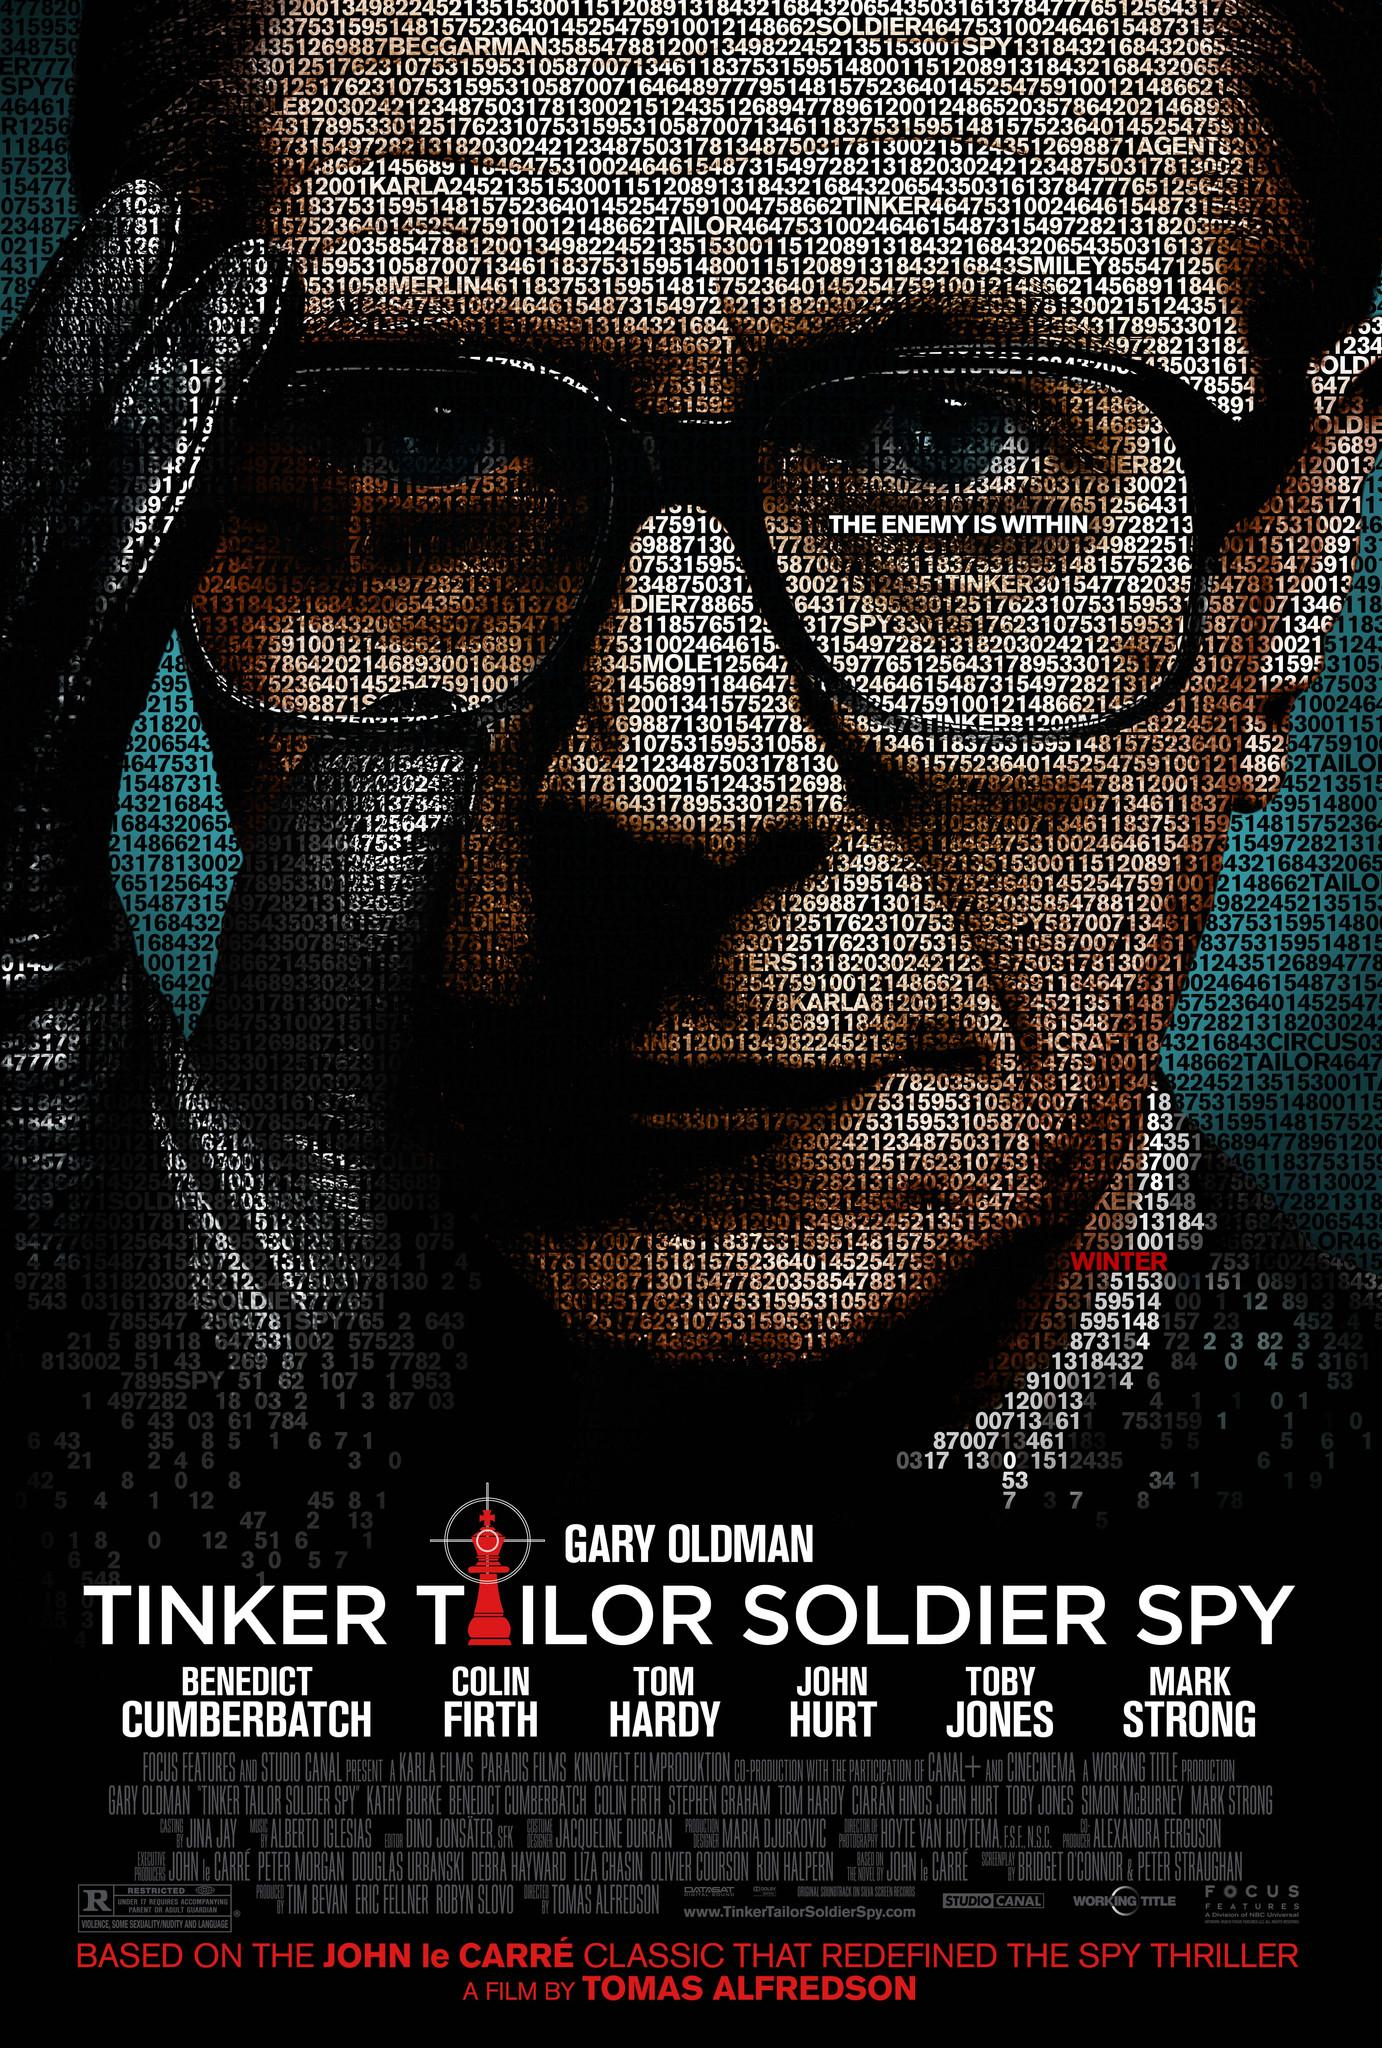 Title Sequence for Tinker Tailor Soldier Spy - image 1 - student project